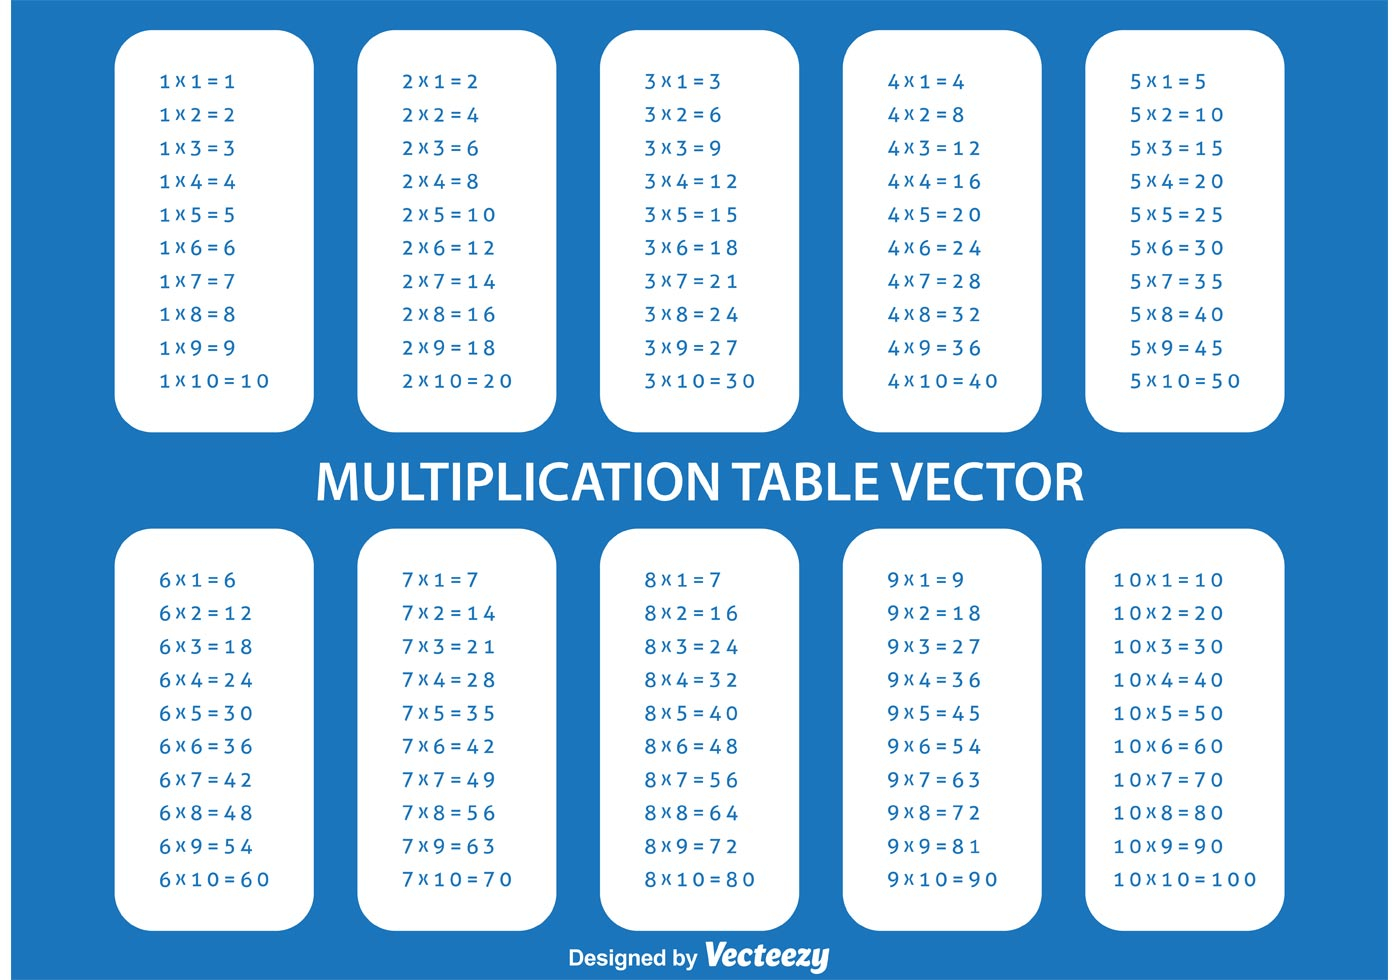 Multiplication Table - Download Free Vectors, Clipart